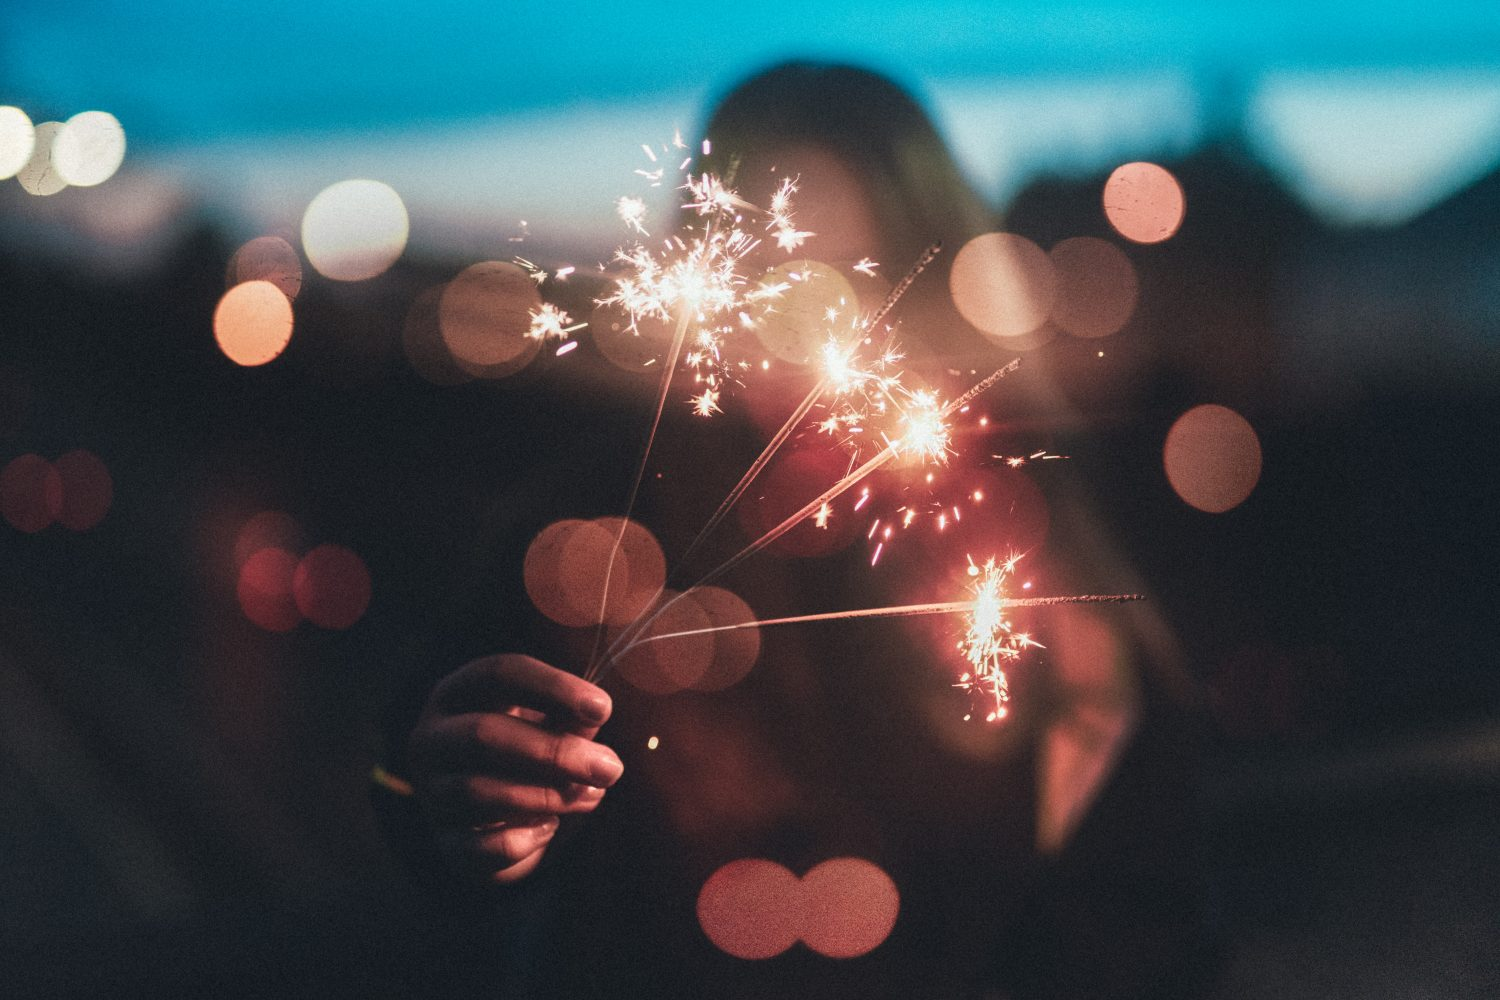 Lady holding a sparkler on new years